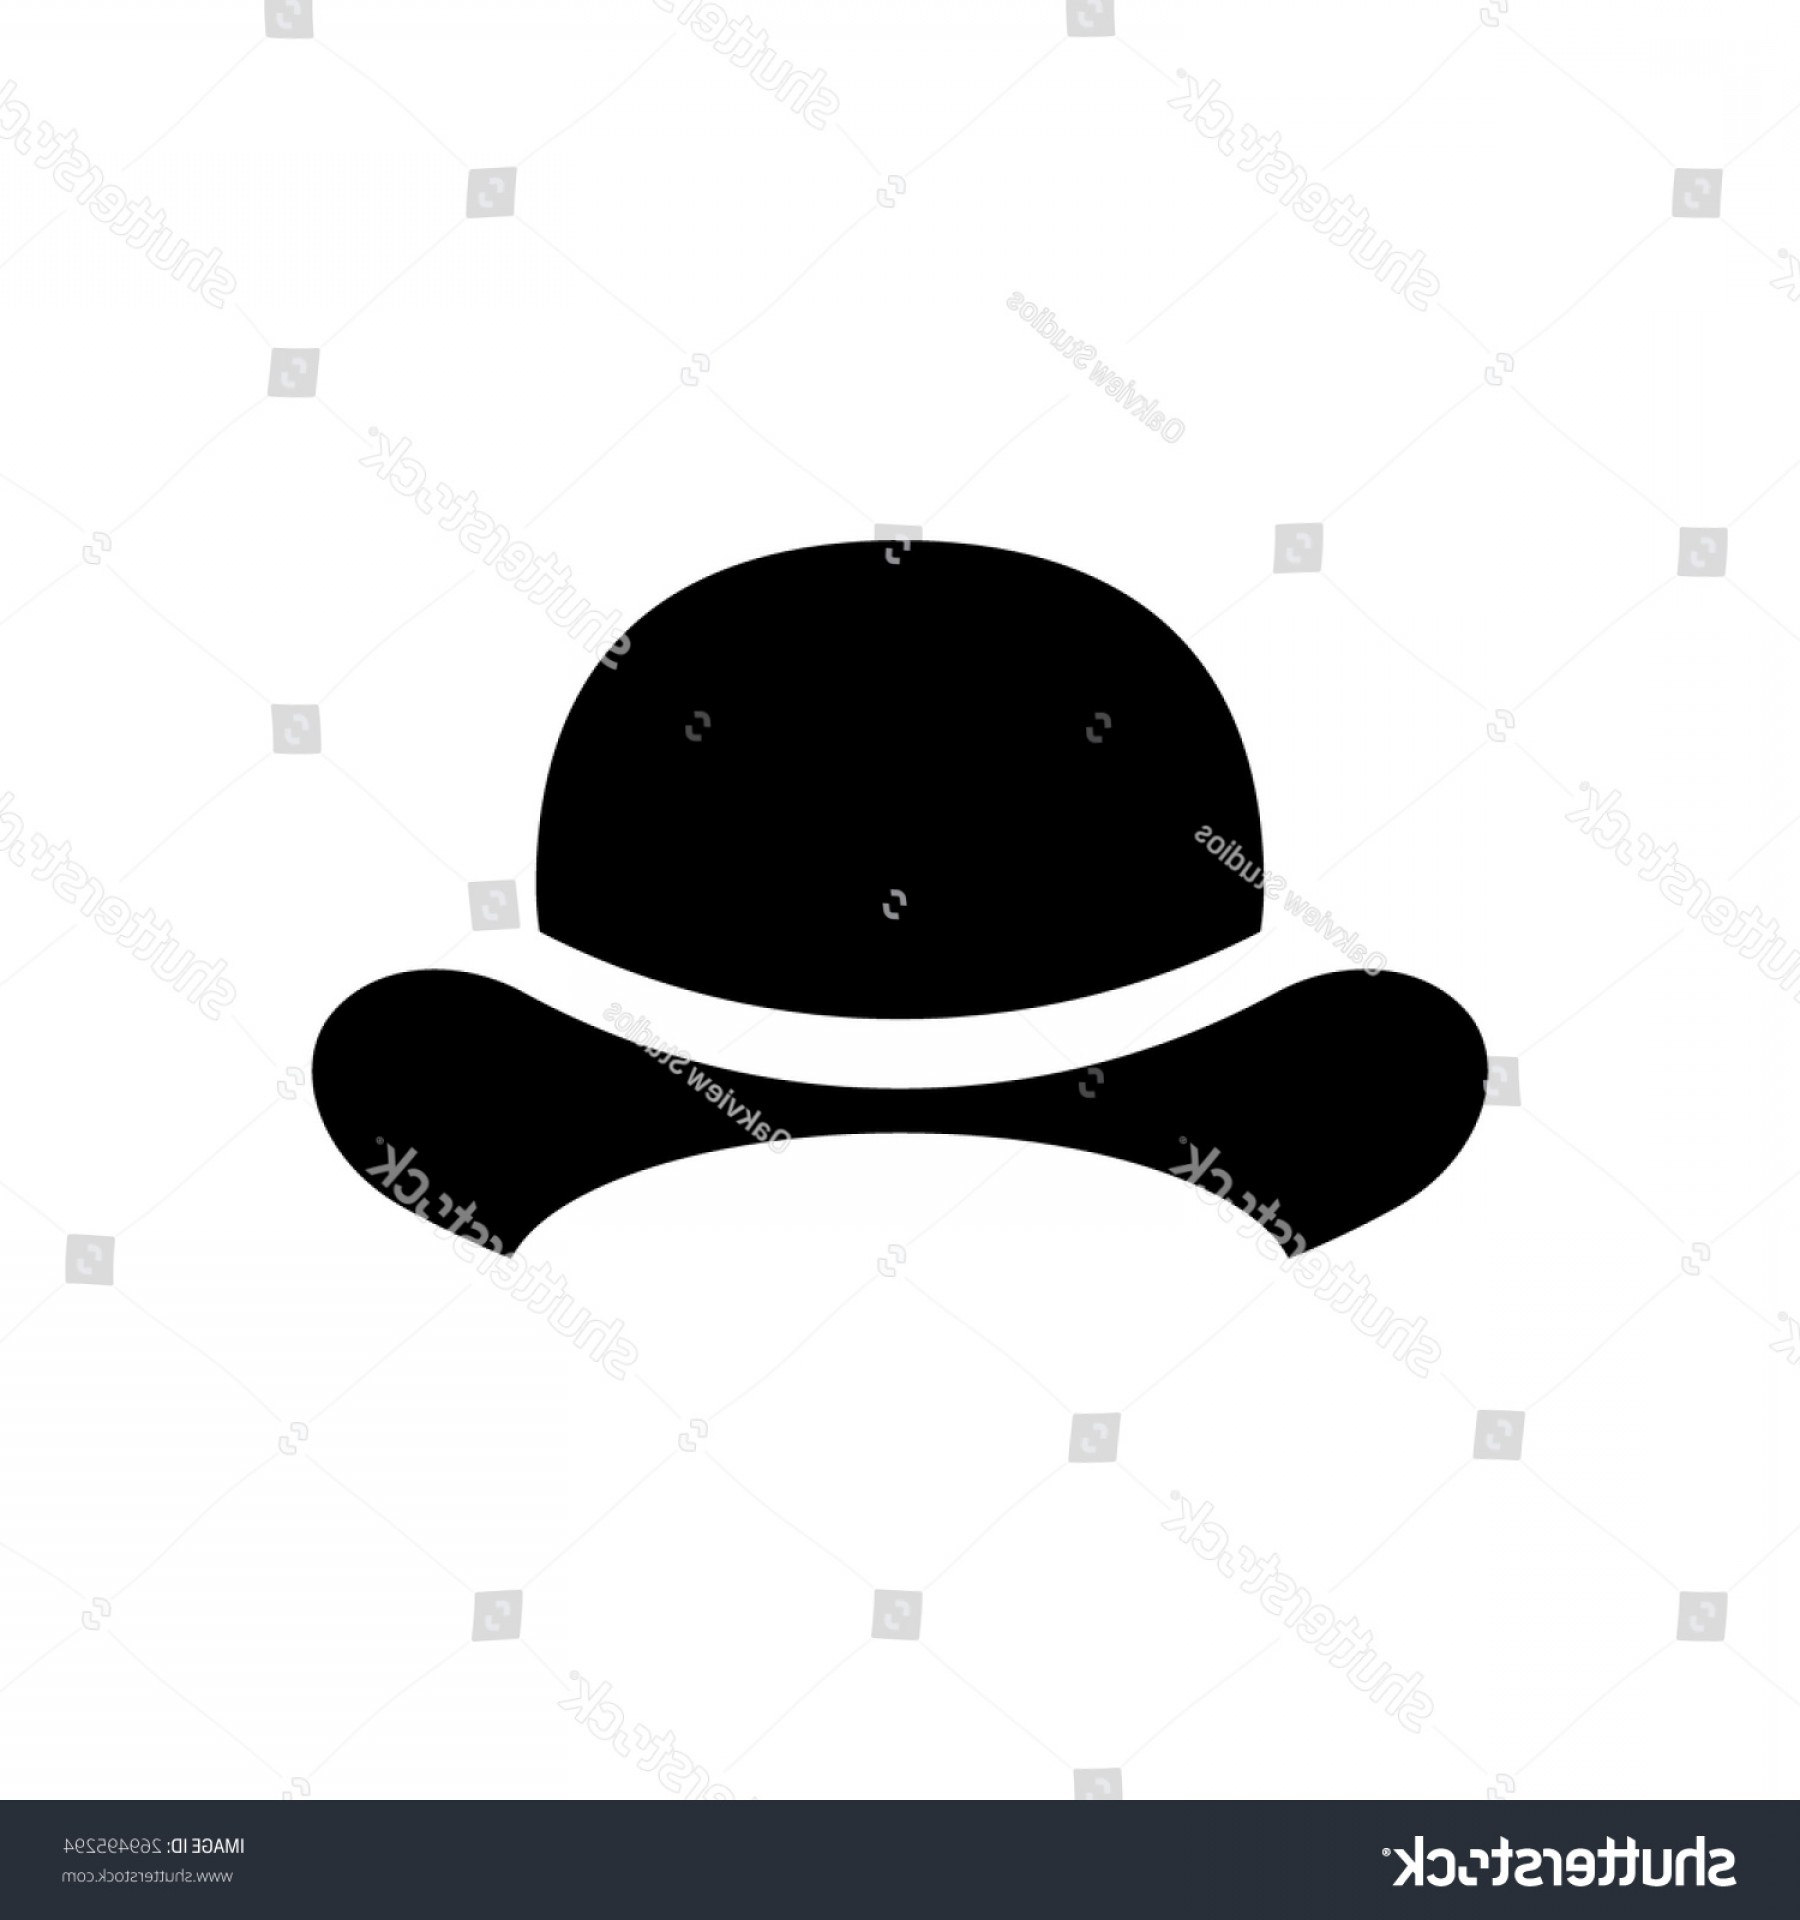 Bowler Hat Vector: Bowler Hat Icon Vector Illustration